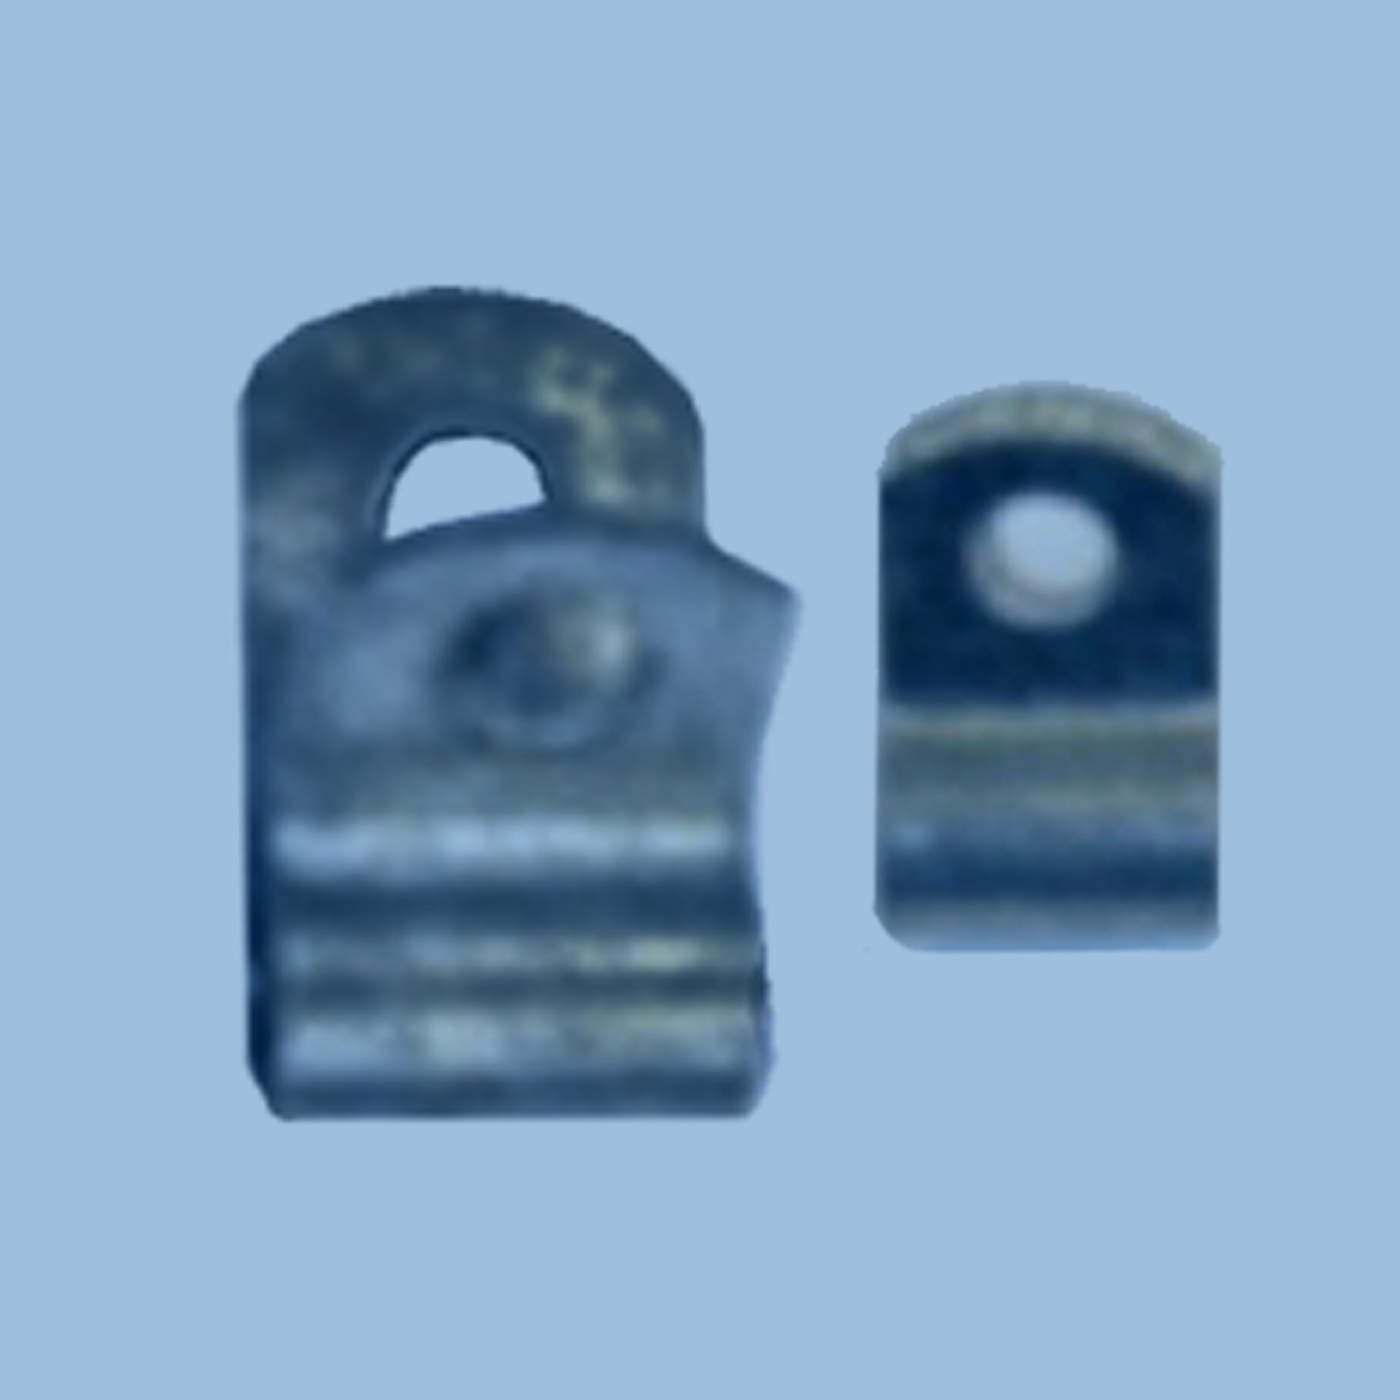 Nylon or Steel Surface Mount Hinge Clip